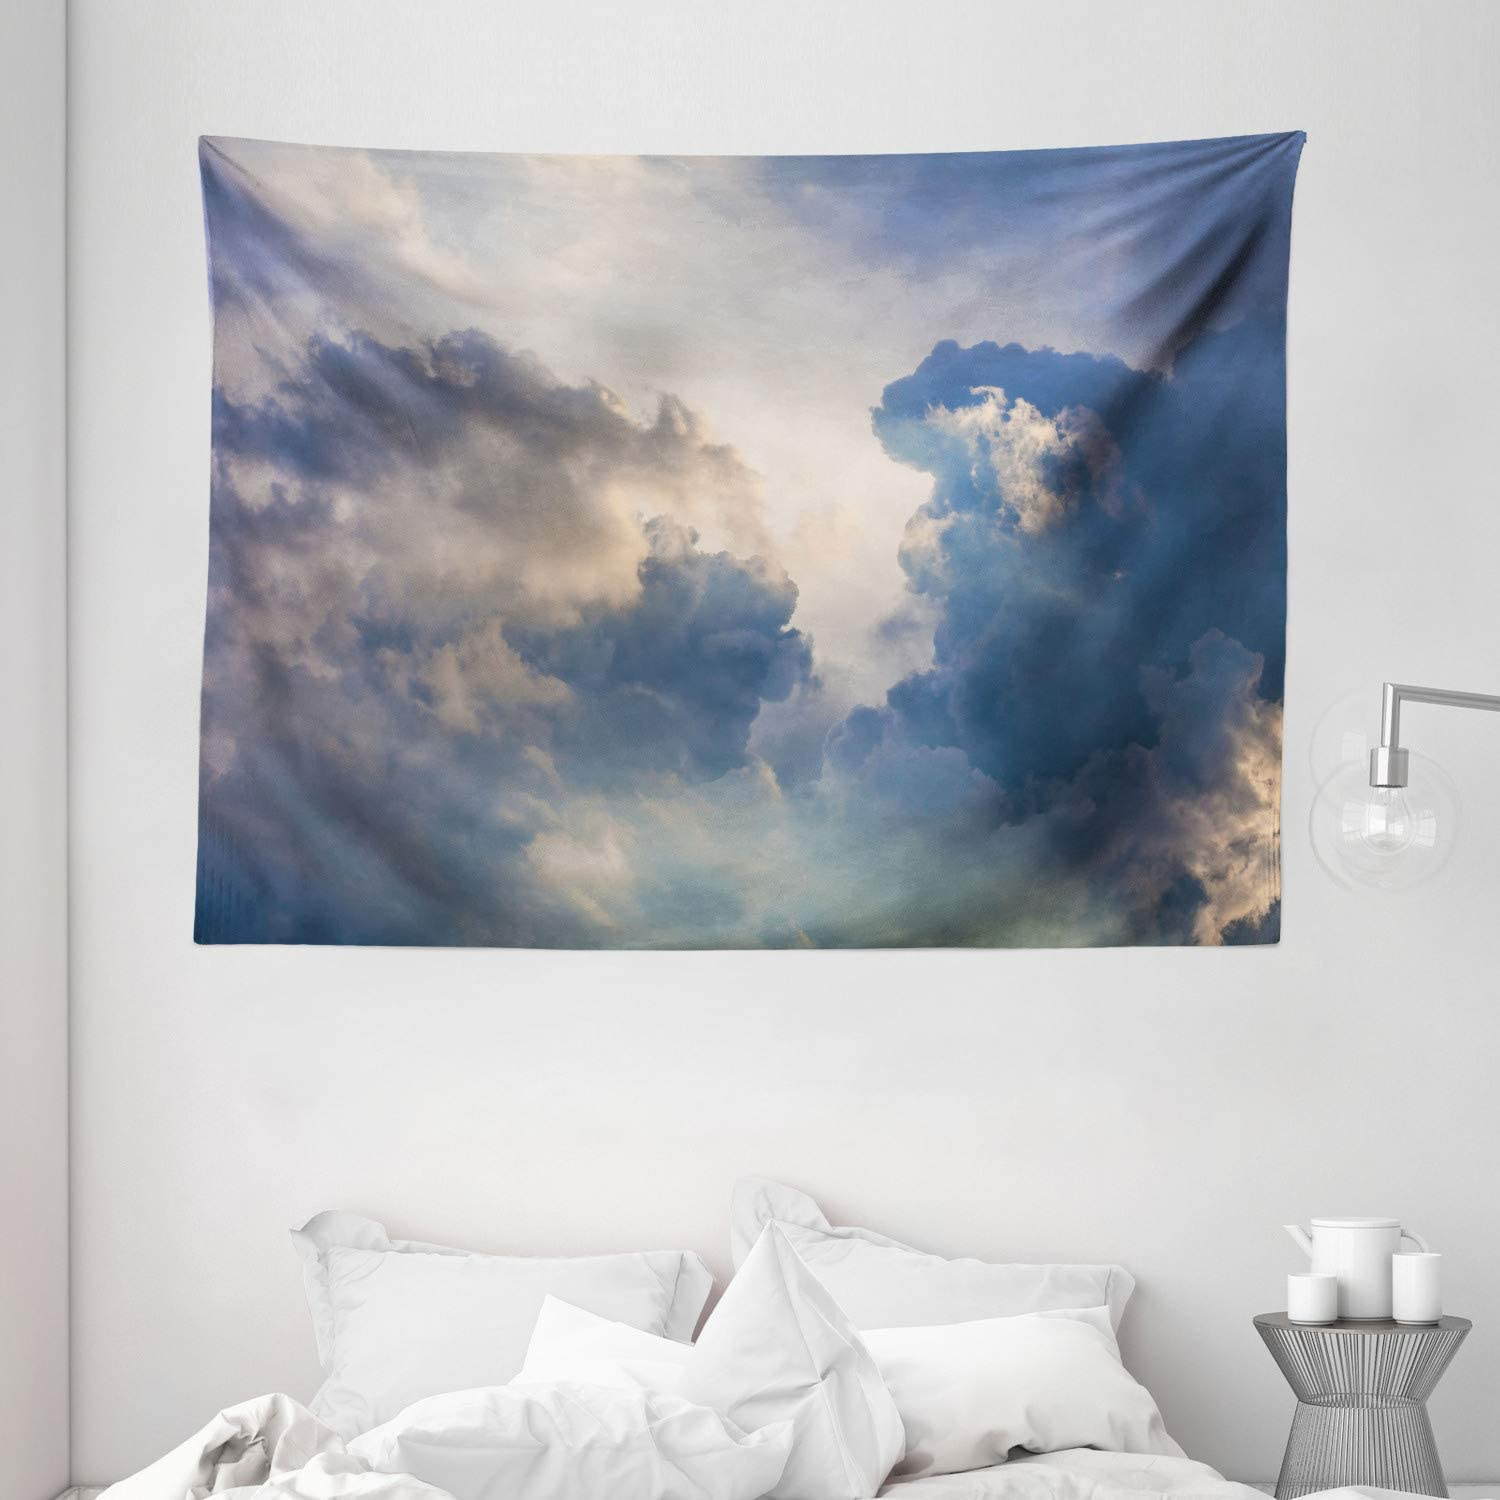 Amazon Com Ambesonne Clouds Tapestry Majestic Rain Storm Clouds Over The Sky High Above The Ground Environment Scenery Wide Wall Hanging For Bedroom Living Room Dorm 80 X 60 White Blue Home